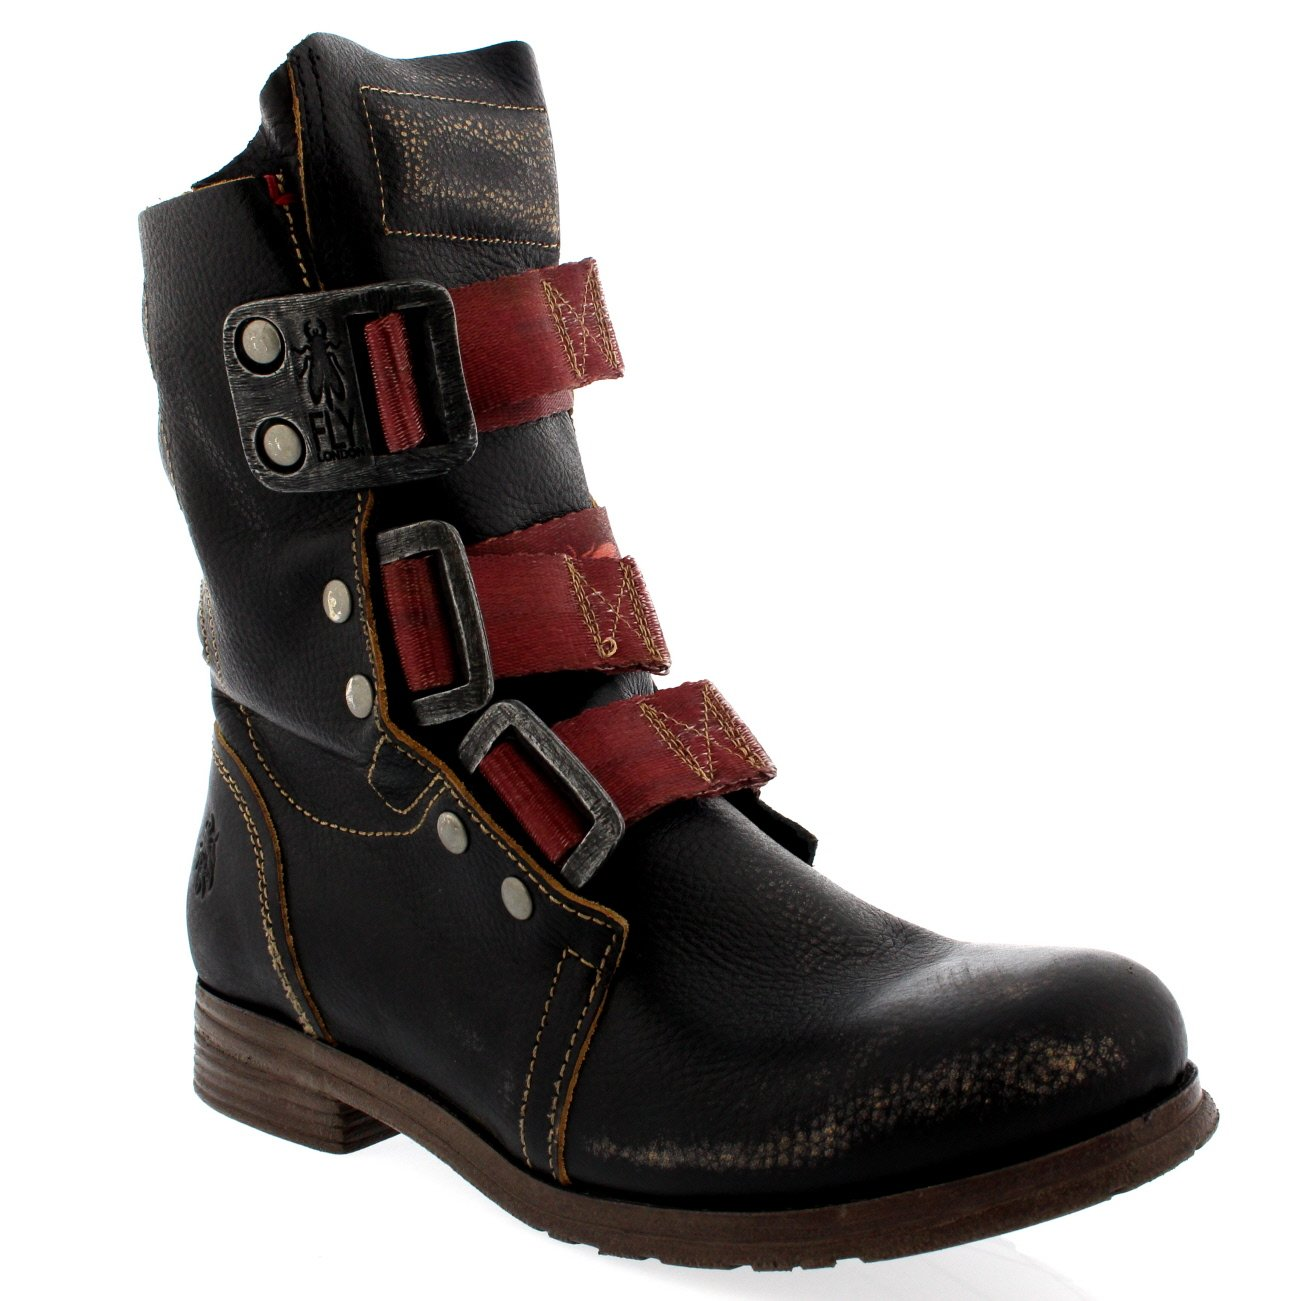 Womens Fly London Stif Leather Pull On Military Biker Buckle Ankle Boots B00ML0Y9ZY 7 B(M) US|Black